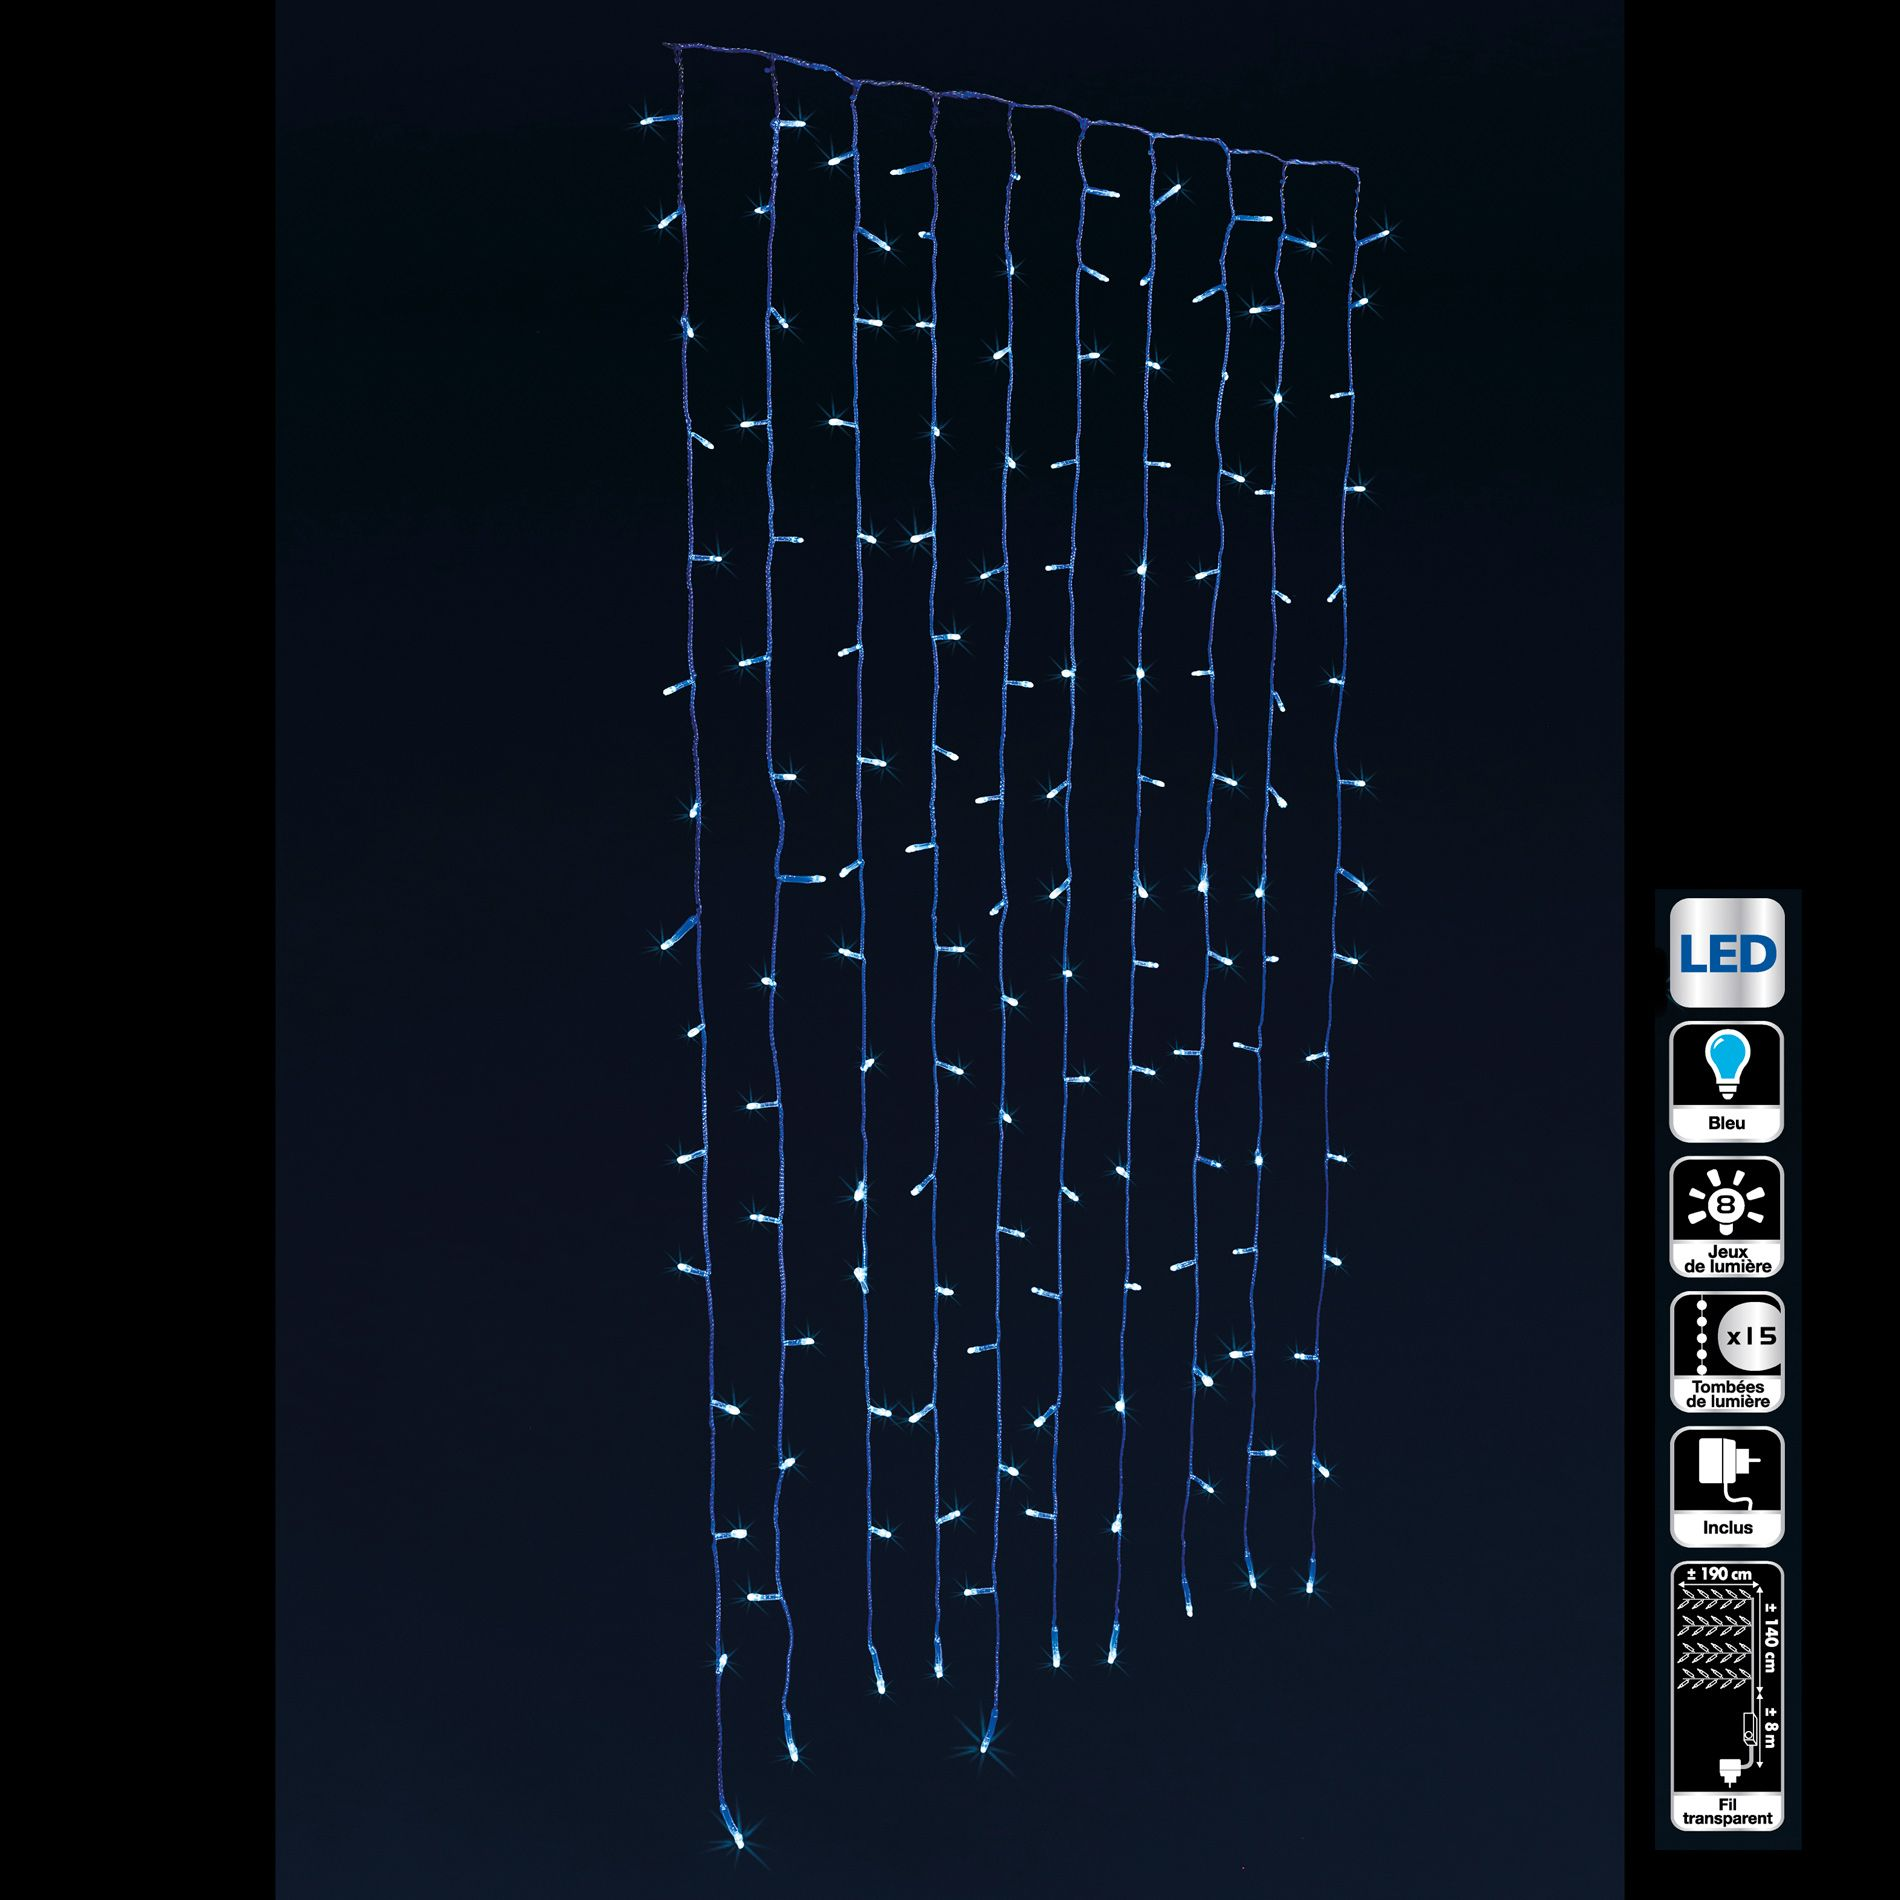 rideau lumineux h1 90 m bleu 300 led guirlande lumineuse eminza. Black Bedroom Furniture Sets. Home Design Ideas